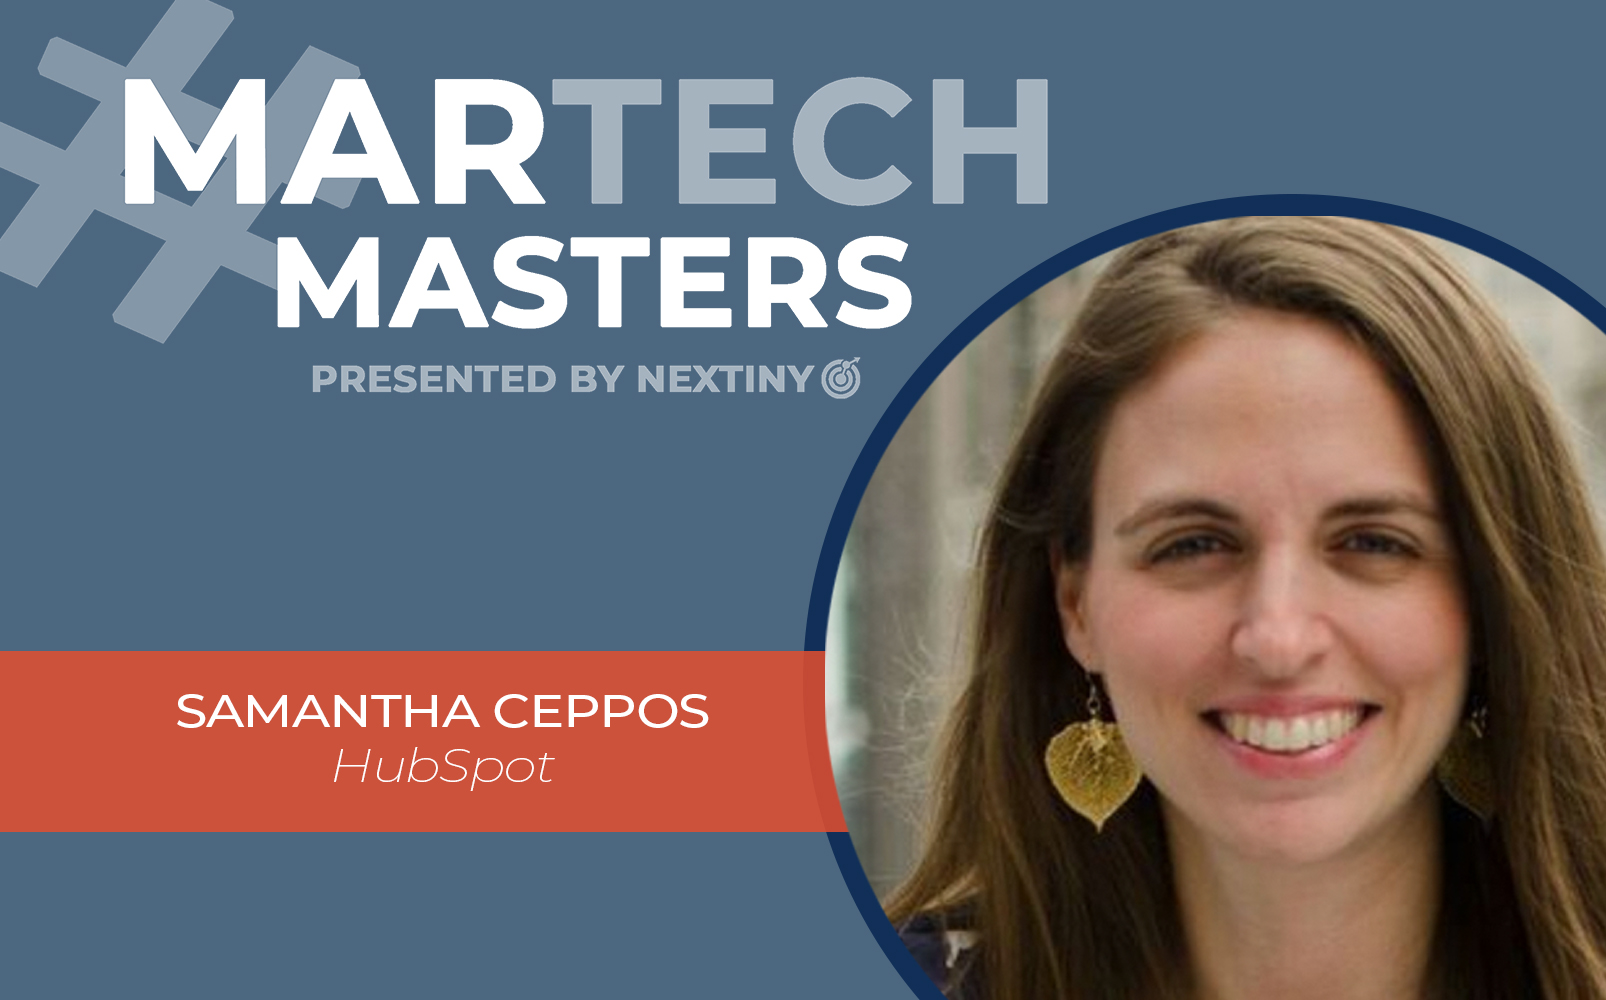 martech masters samantha ceppos choosing a software platform for growth hubspot